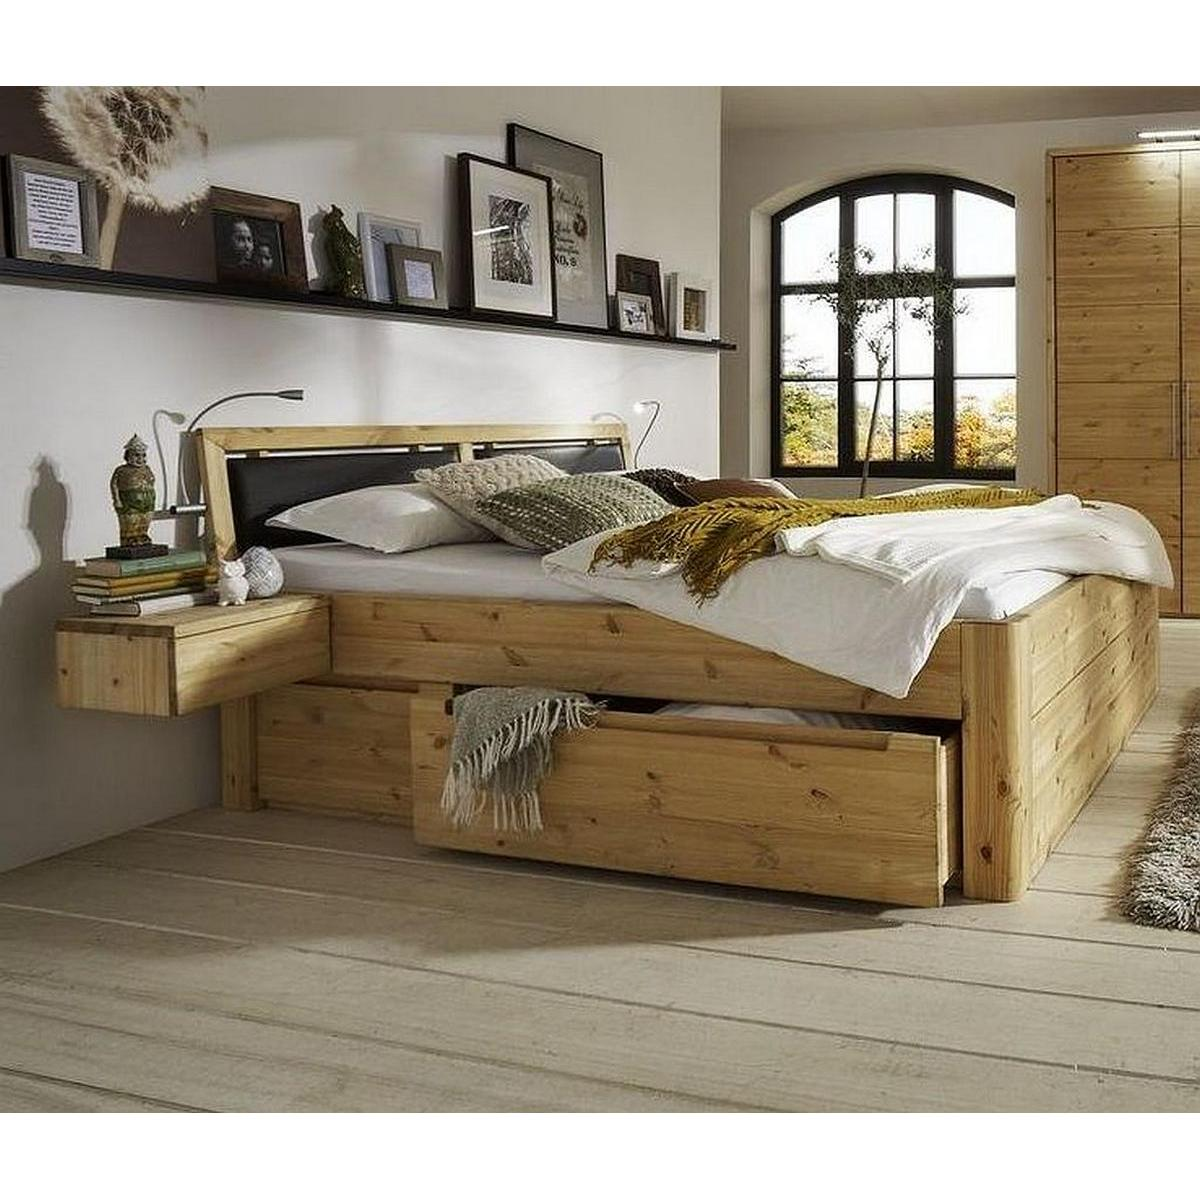 naturholz bett mit schubladen 160x200 komforth he 49 cm kiefer massiv gelaugt ge lt. Black Bedroom Furniture Sets. Home Design Ideas